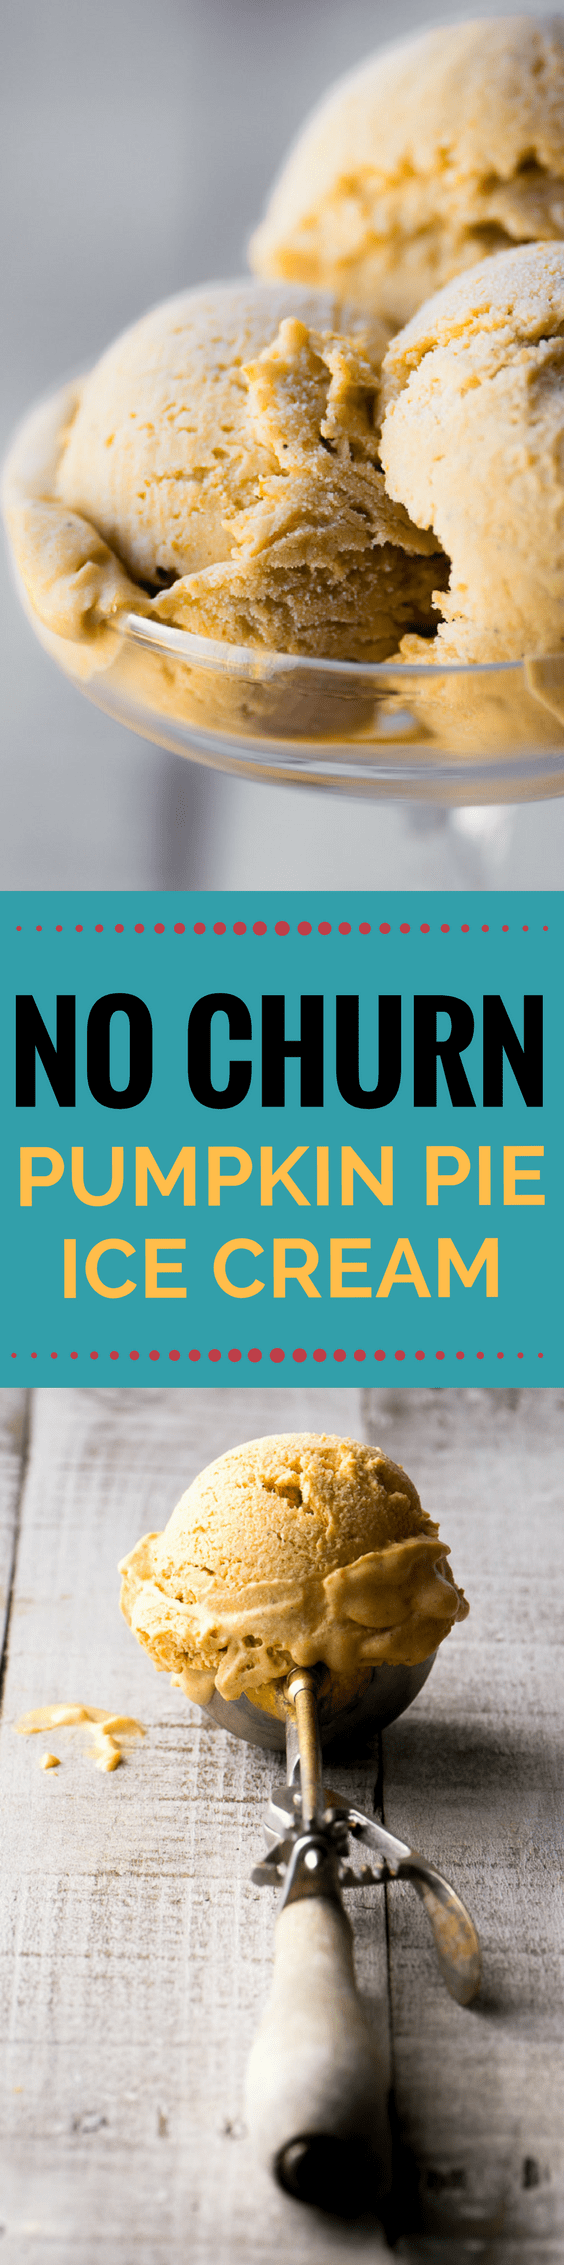 No Churn Pumpkin Spice Ice Cream is a super quick and easy homemade ice cream that requires no heavy machinery, and tastes just like your favorite pie! #icecream #nochurnicecream #bestpumpkinicecream #pumpkin #falldessert #dessert #homemadeicecream #bestnochurnicecream #easypumpkinicecream #pumpkinspice